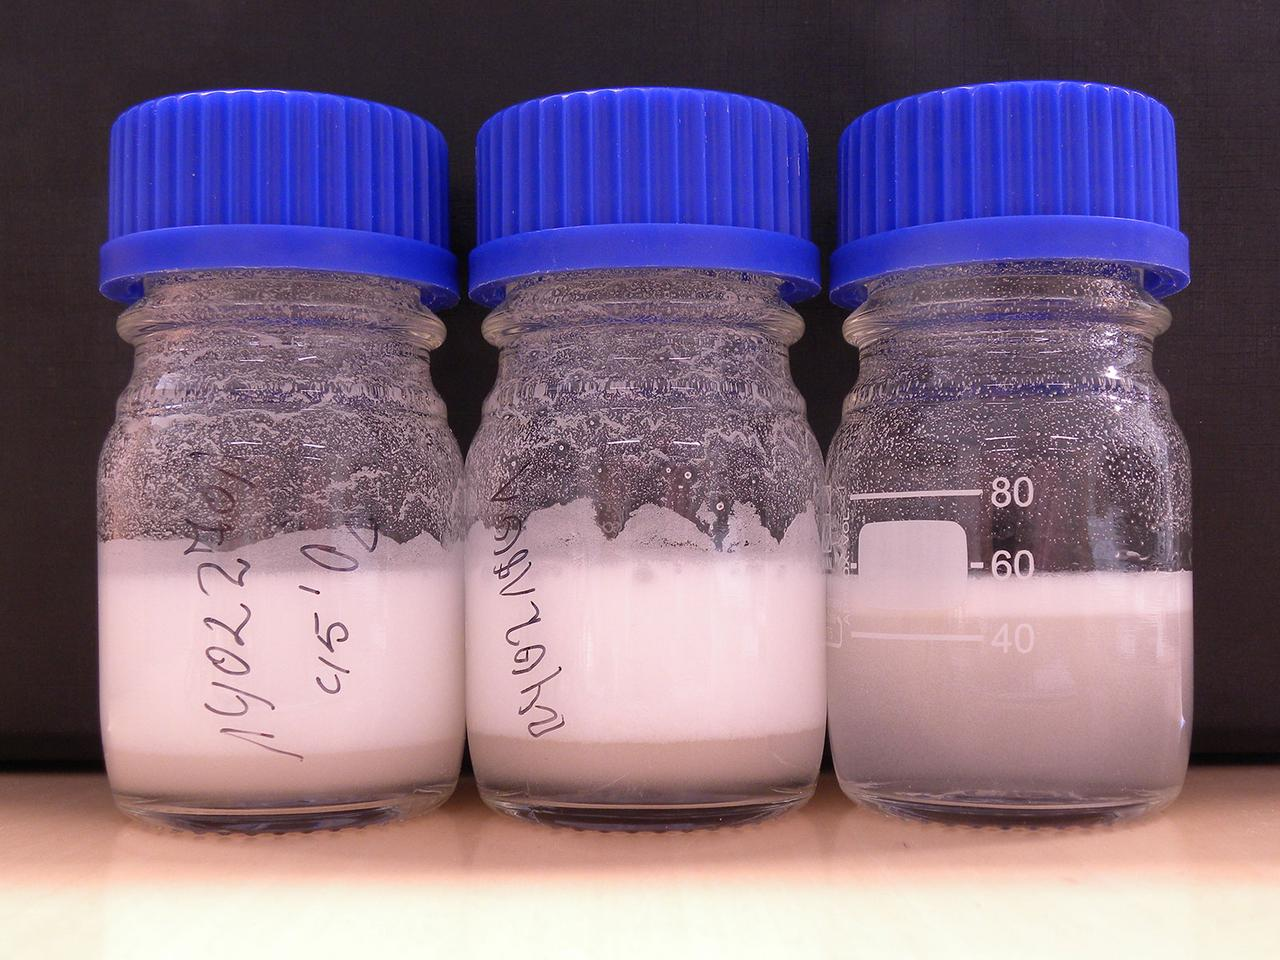 The functionalized polymer powder disperses in water